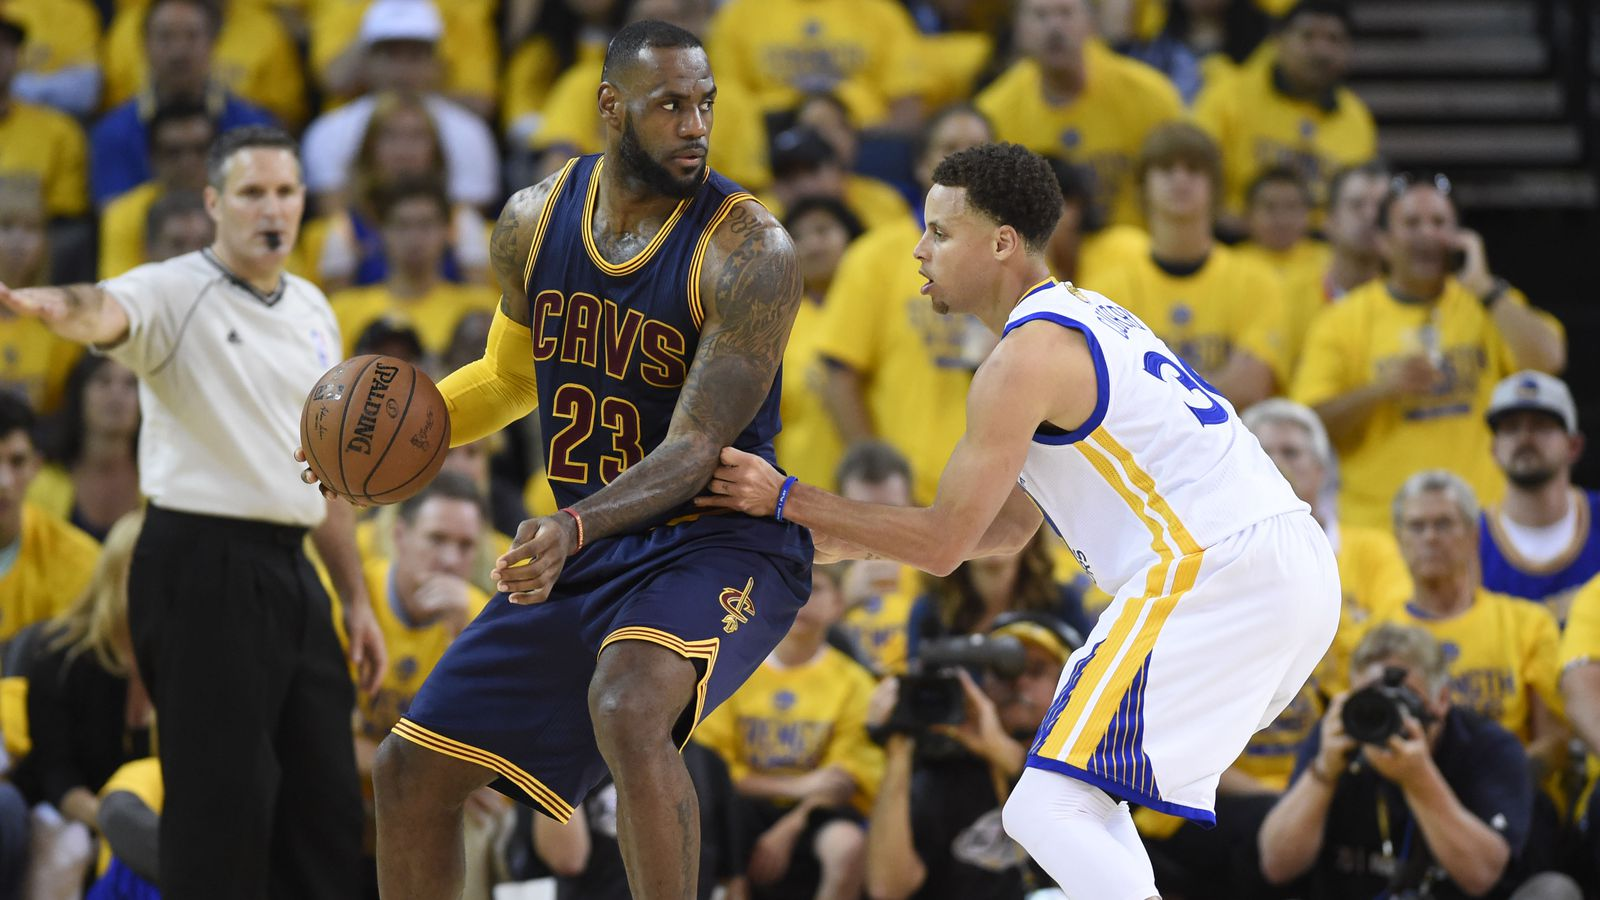 Warriors vs. Cavaliers, NBA Finals 2015: Time, TV schedule and live stream for Game 6 - SBNation.com